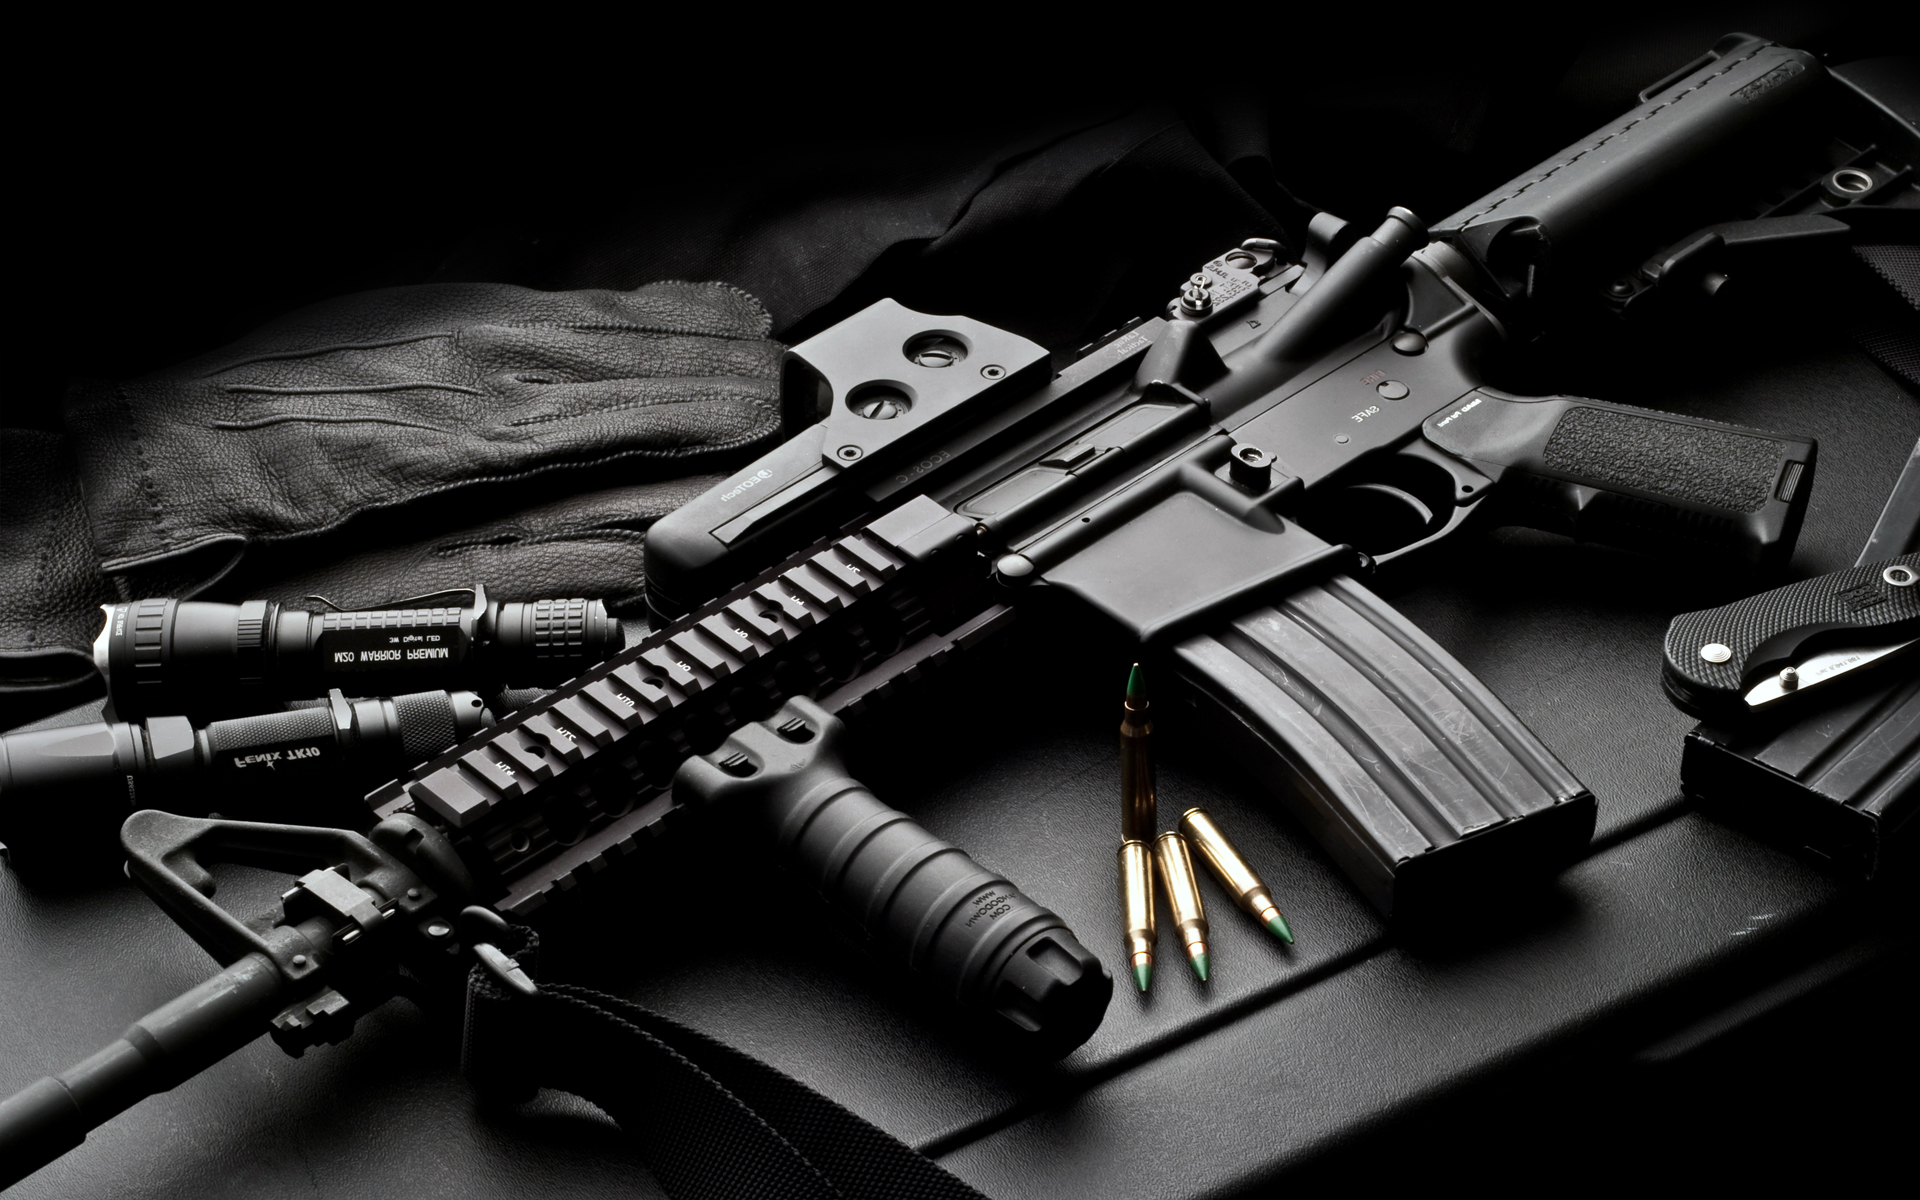 rifle desktop wallpapers free download gun images 1 hd wallpapers